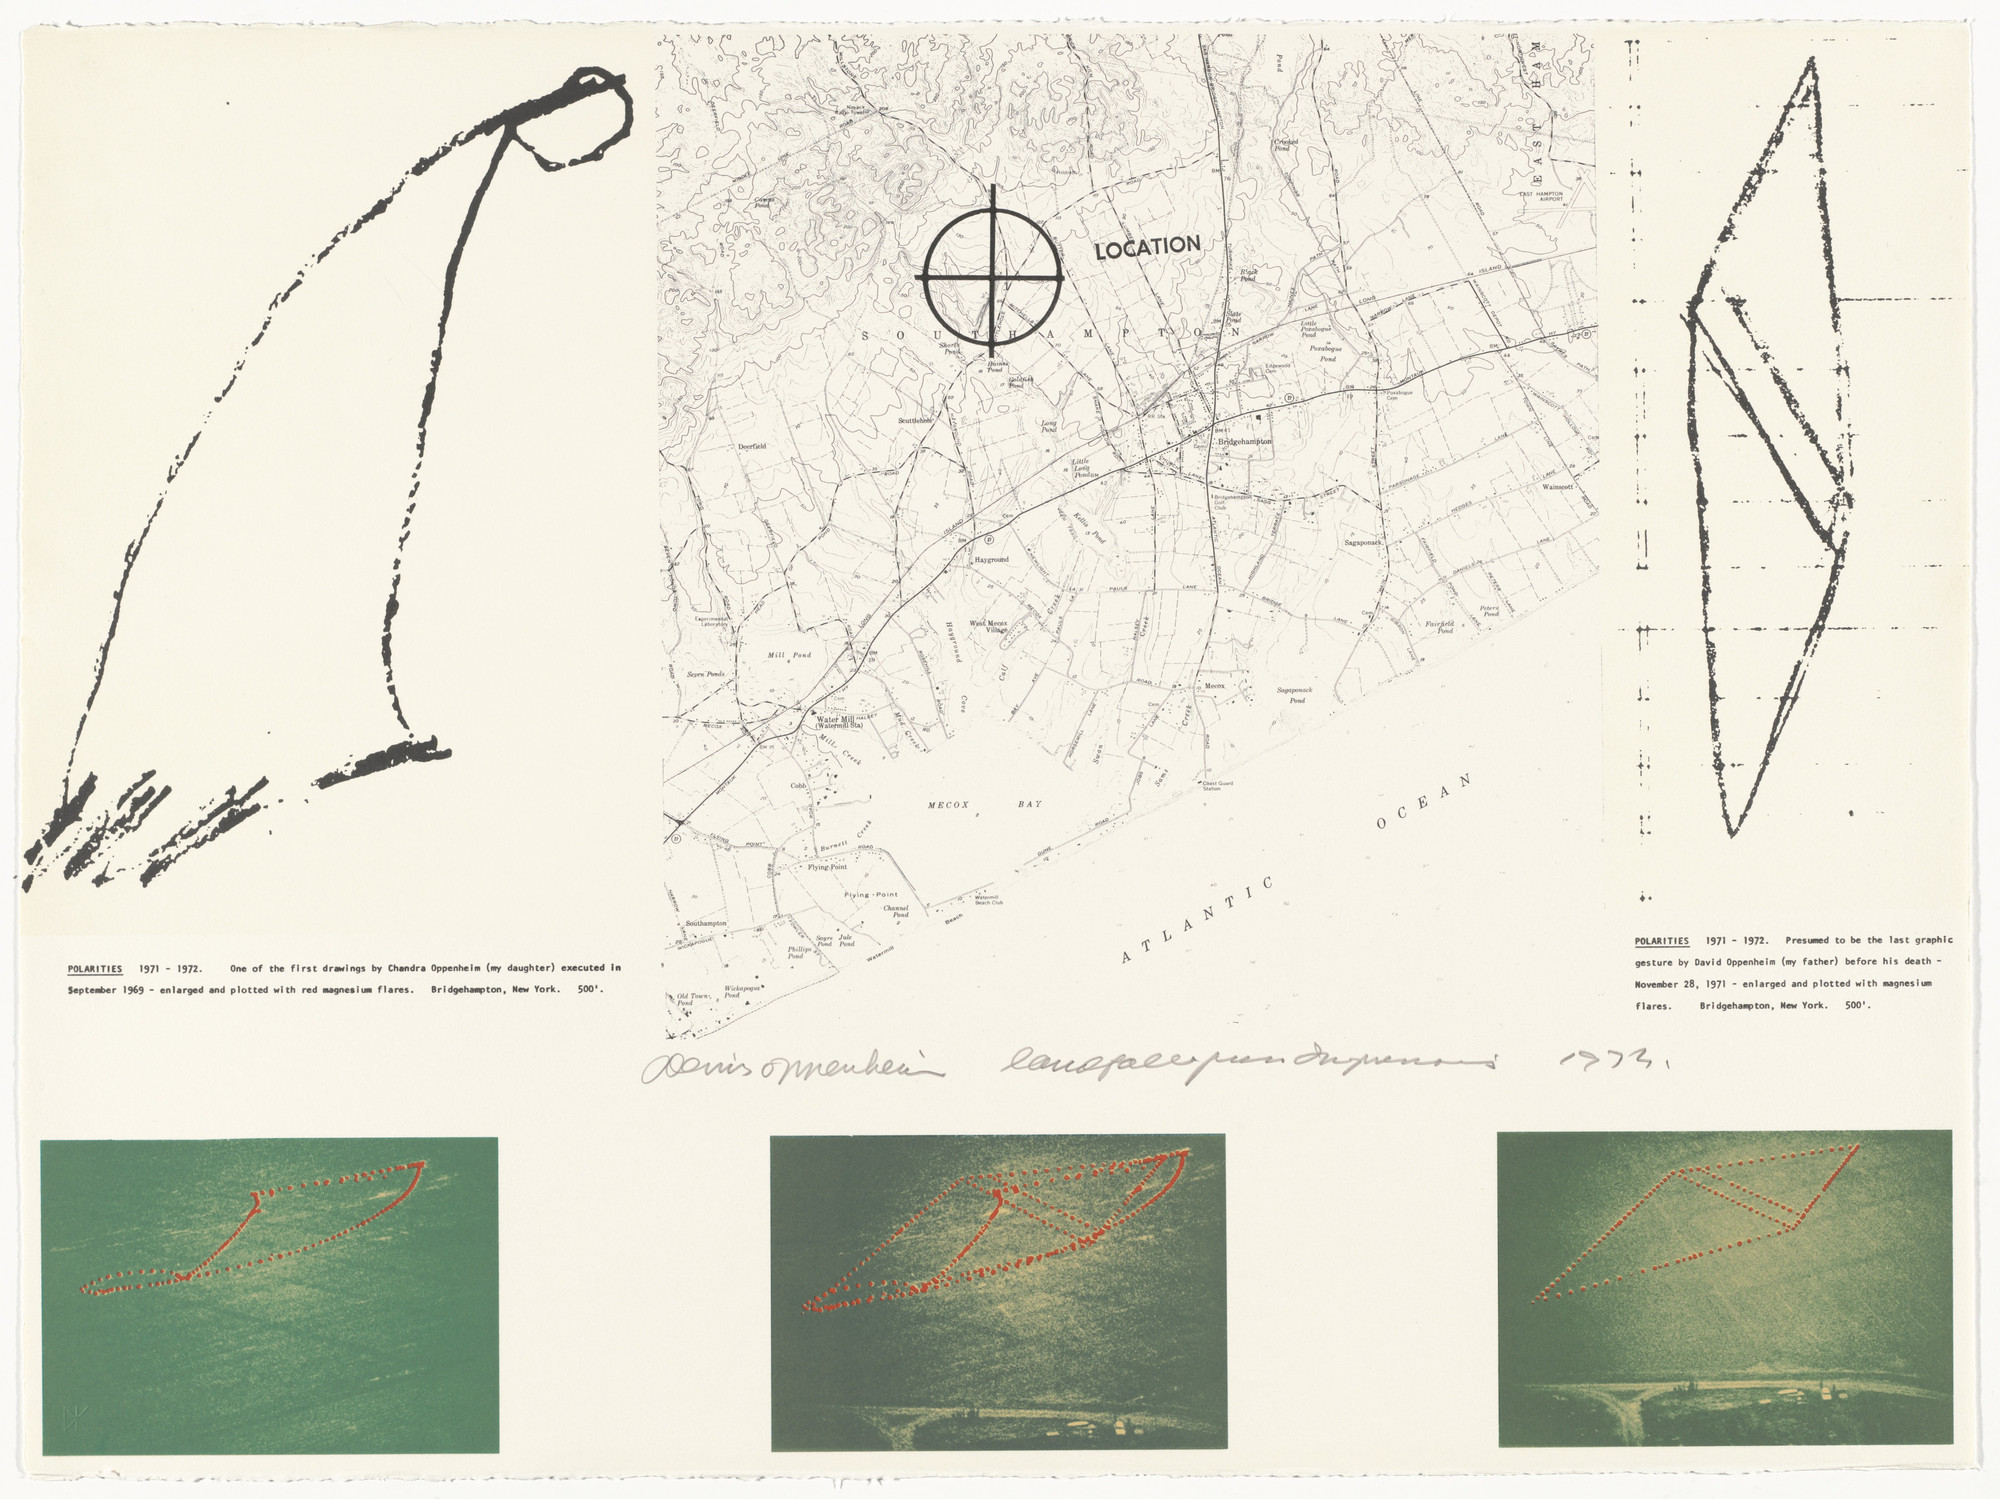 Dennis Oppenheim. Polarities. 1972 from Projects by Dennis Oppenheim. 1973